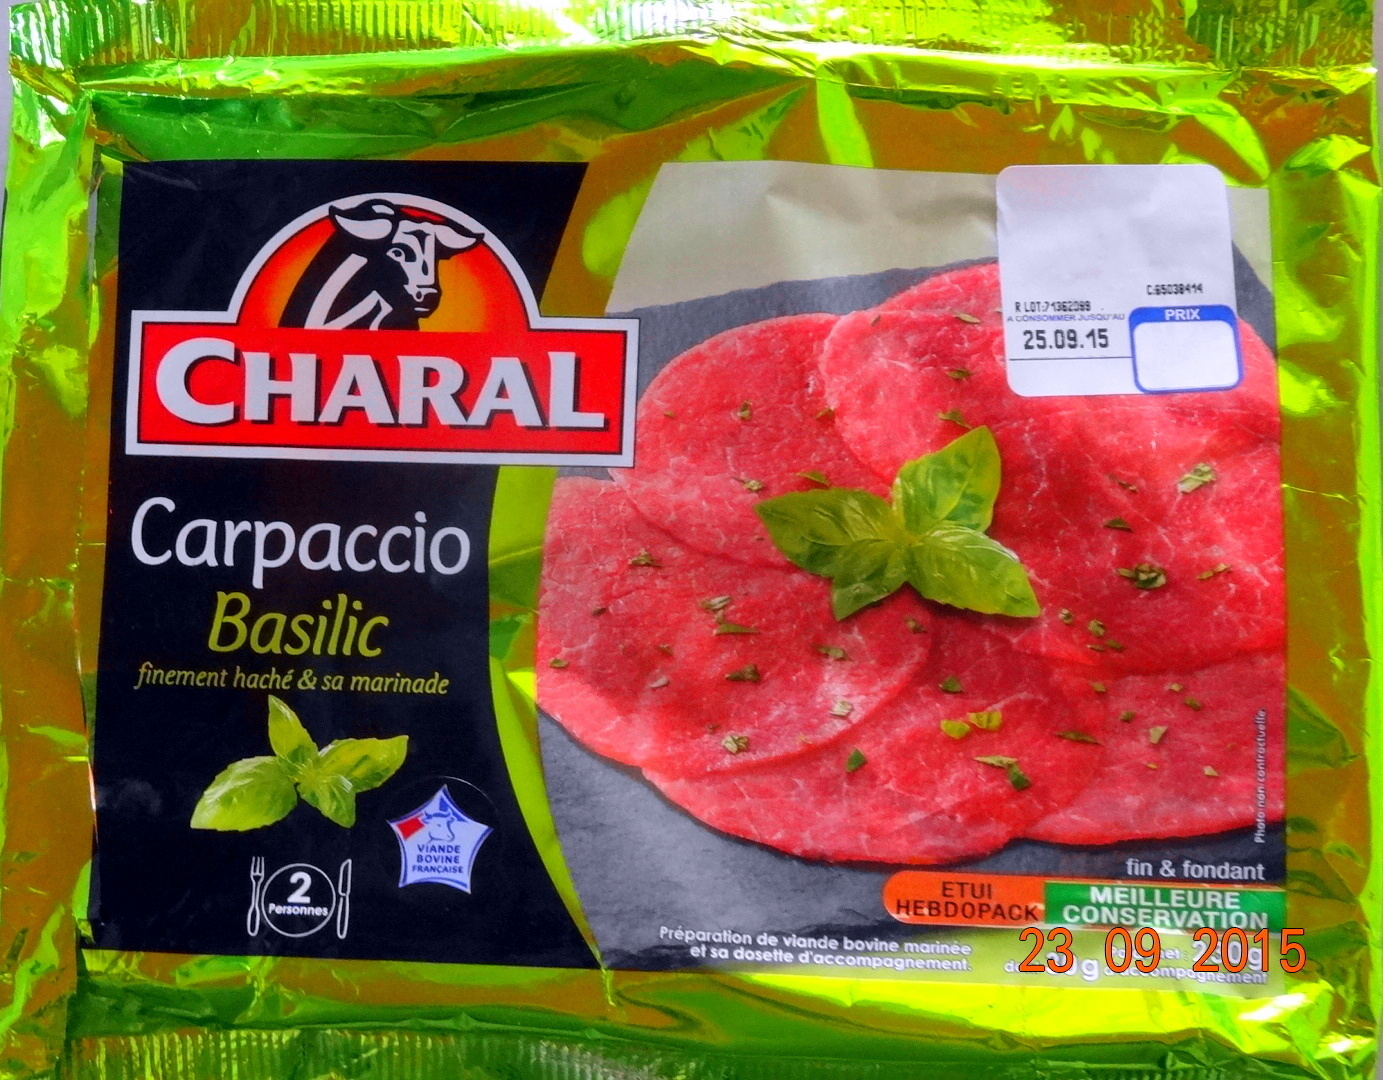 Carpaccio, Basilic finement haché & sa marinade - Product